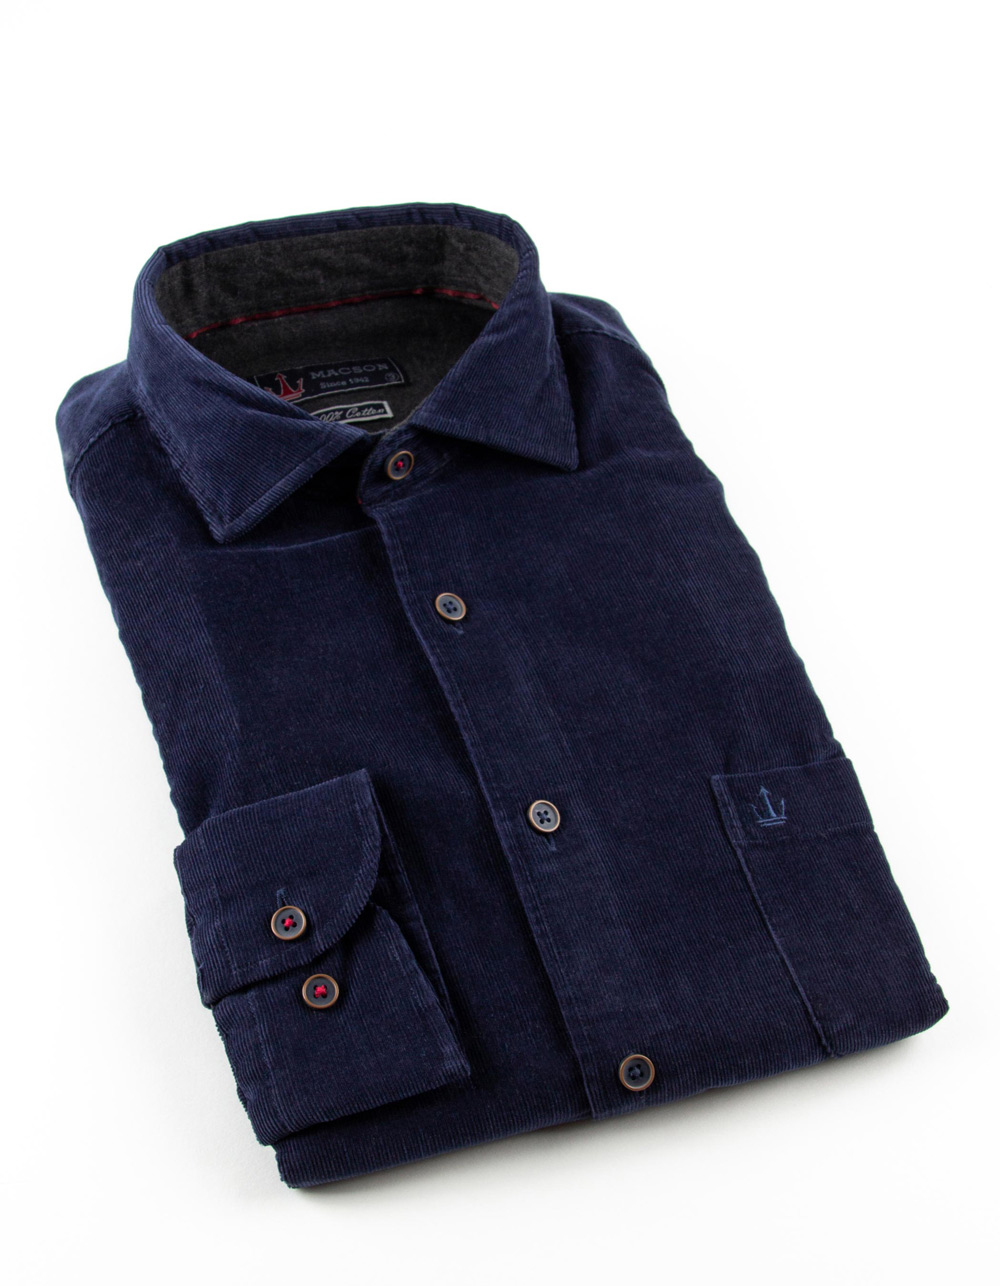 Blue finest corduroy shirt